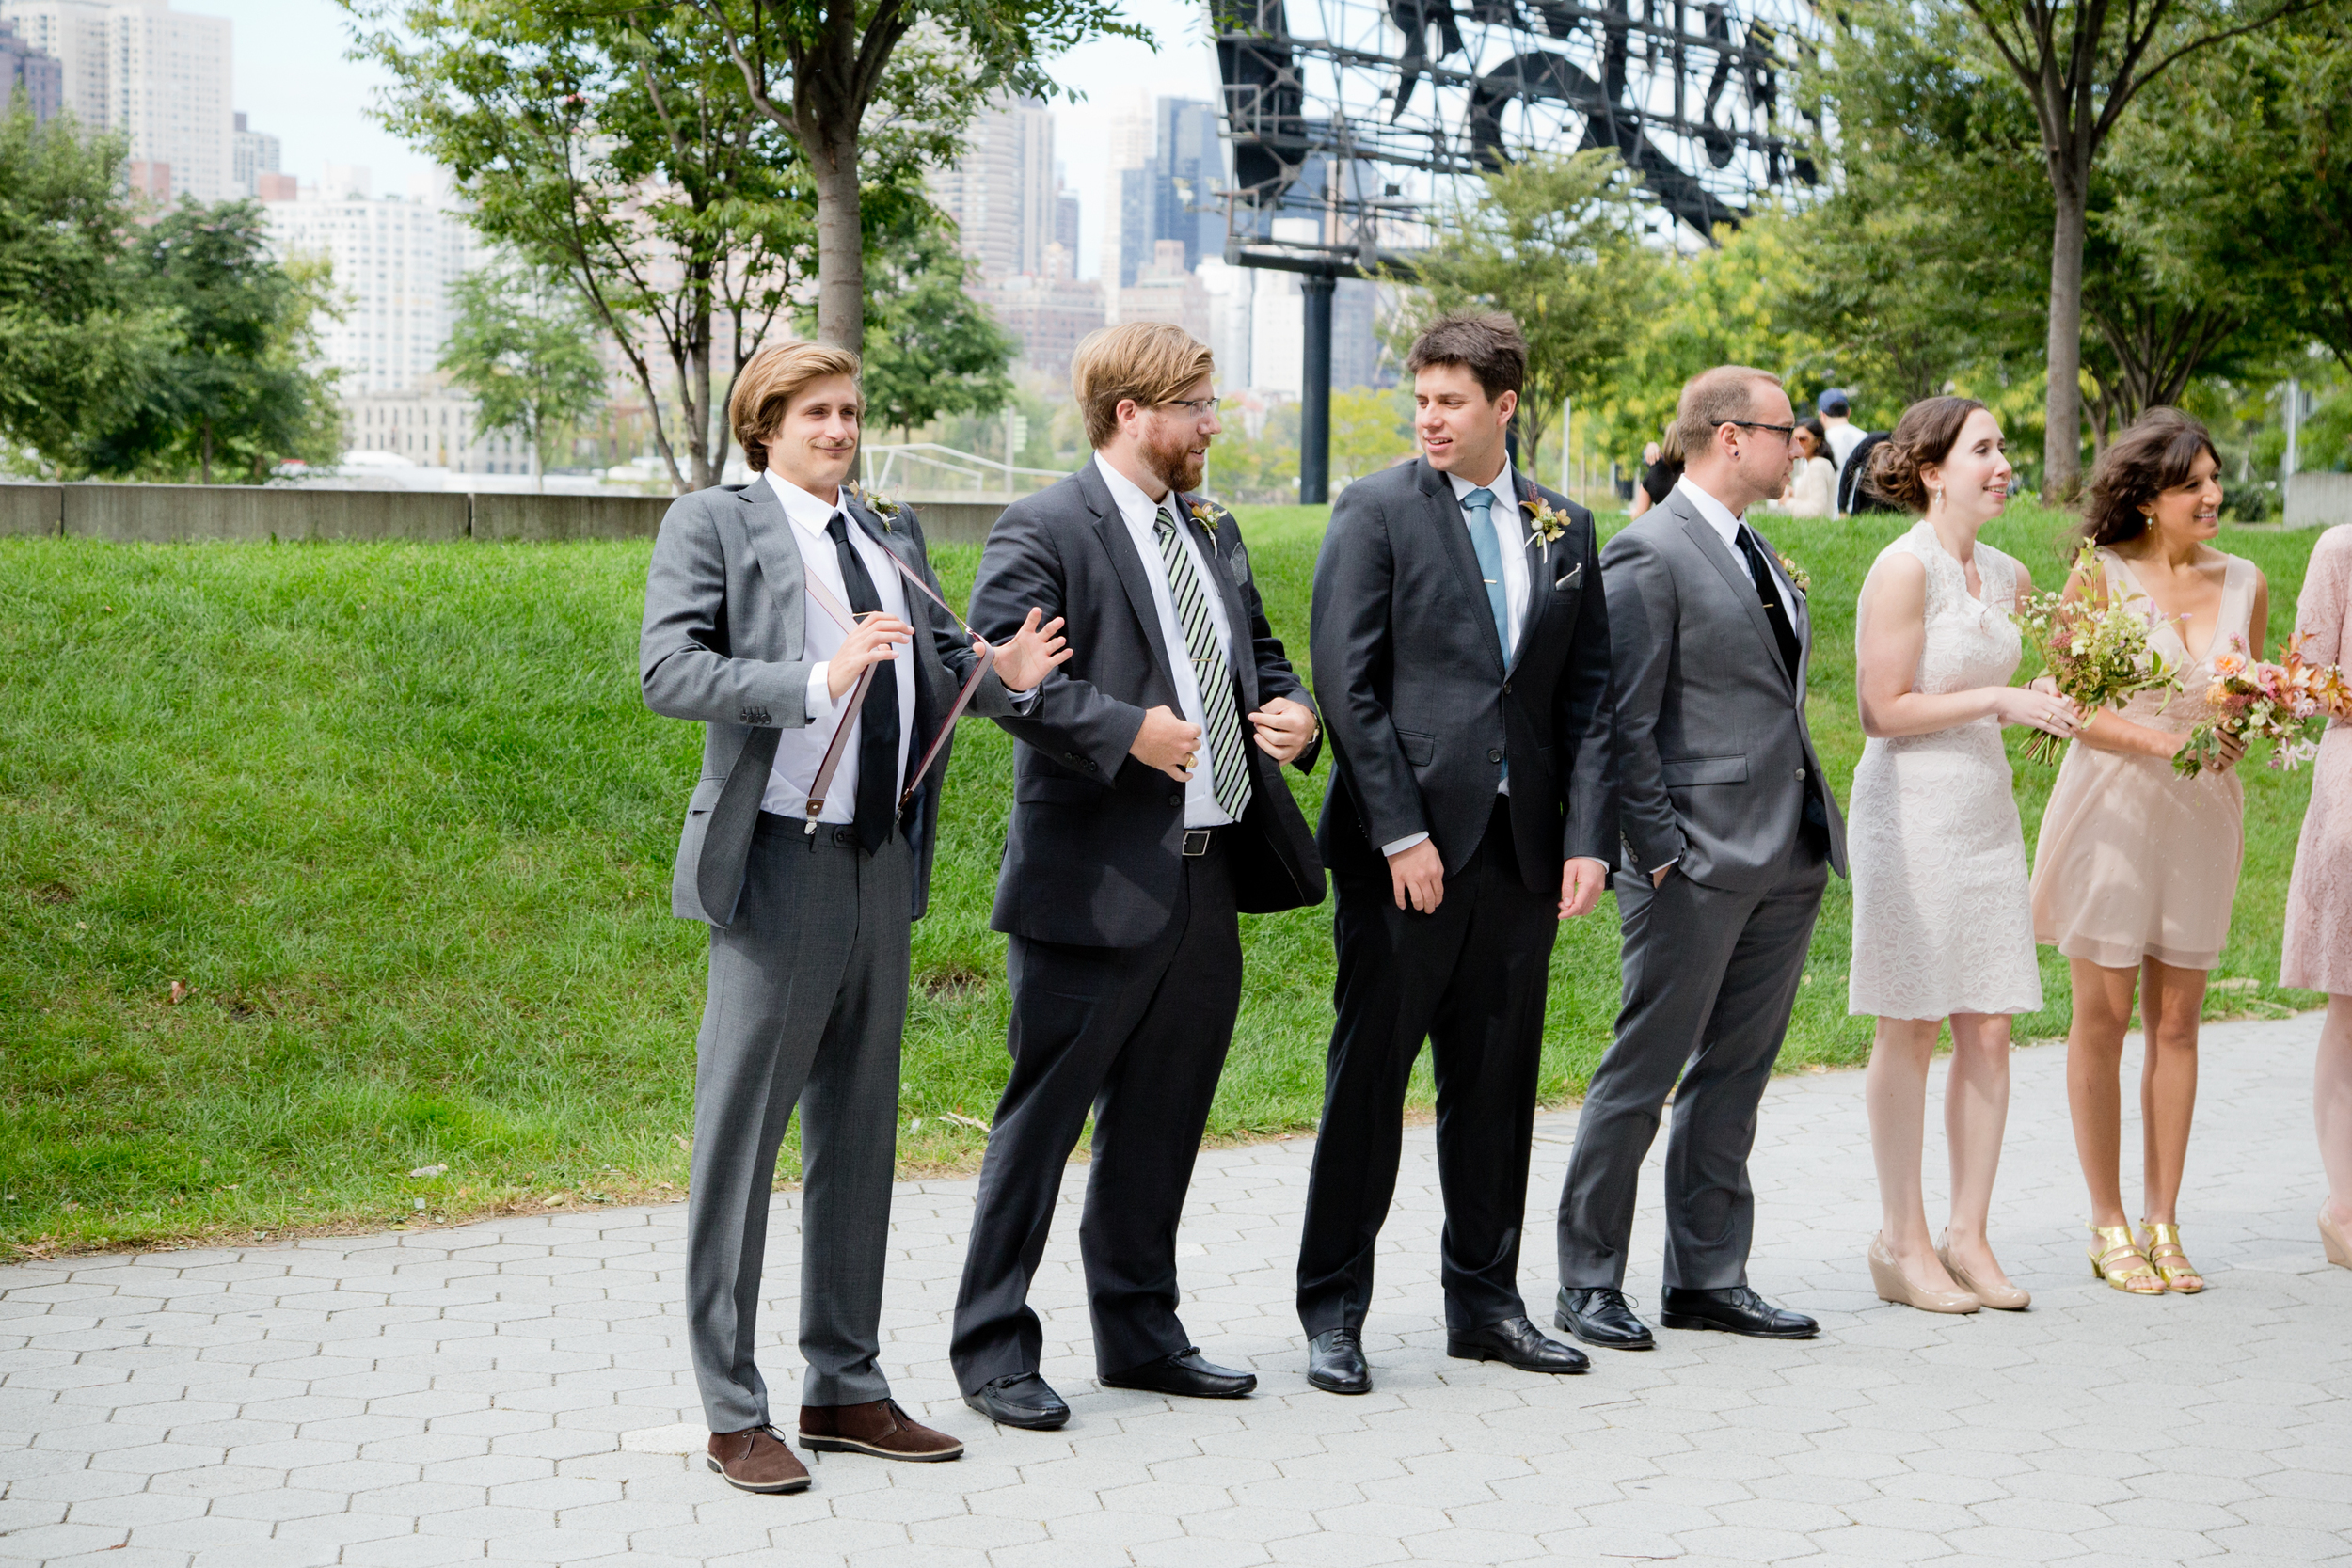 056_CarlyGaebe_SteadfastStudio_WeddingPhotography_Readyluck_NewYorkCity_Brooklyn_LongIslandCity_GantryStatePark_EastRiver_Waterfront__Fall_AltaModaBridal_Bouquet_Bride_Groomsmen_BridalParty.jpg